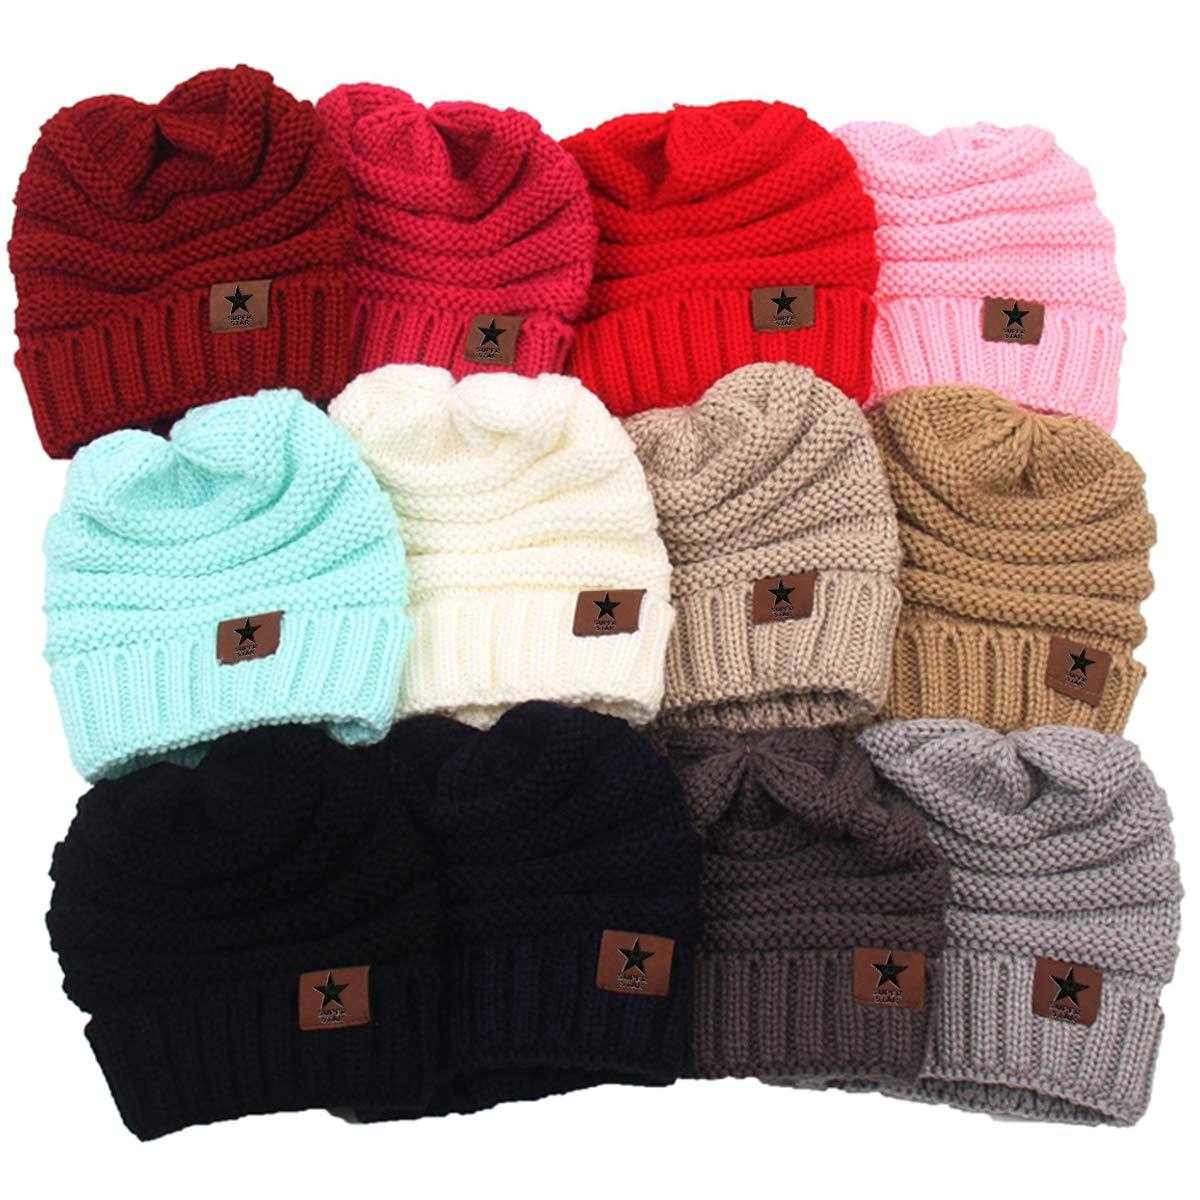 Azue Kids Winter Hats Newborn Baby Warm Knit Lined Caps Toddler Children Beanies